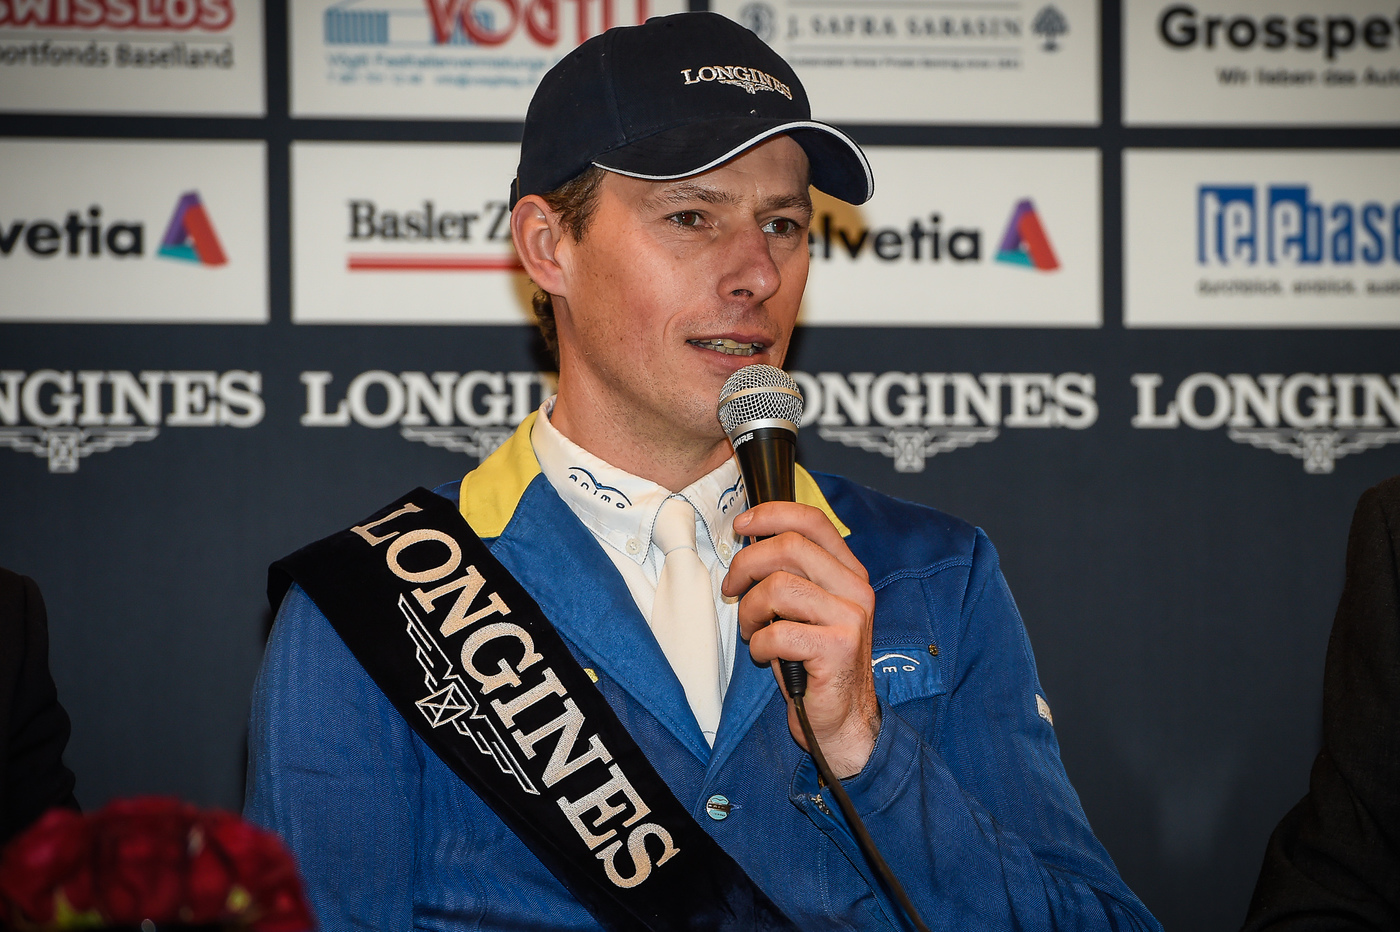 Longines Show Jumping Event: Christian Ahlmann wins the Longines Grand Prix in Basel 2